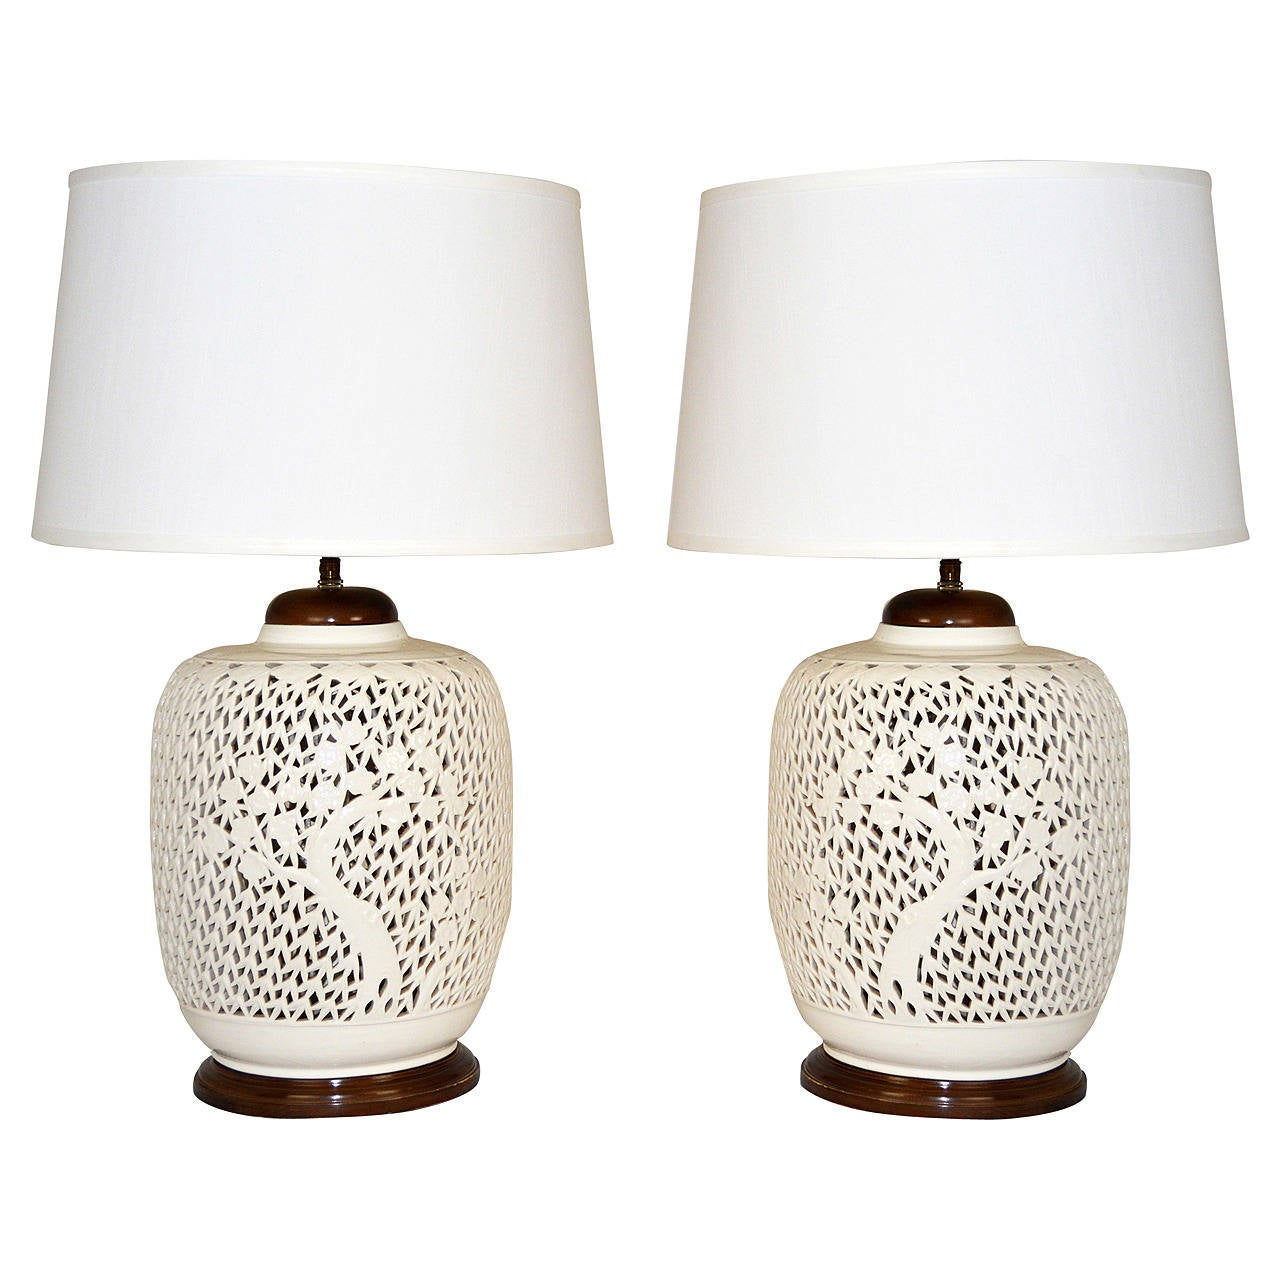 Pair Of Reticulated Porcelain Blanc De Chine Lamps At 1stdibs